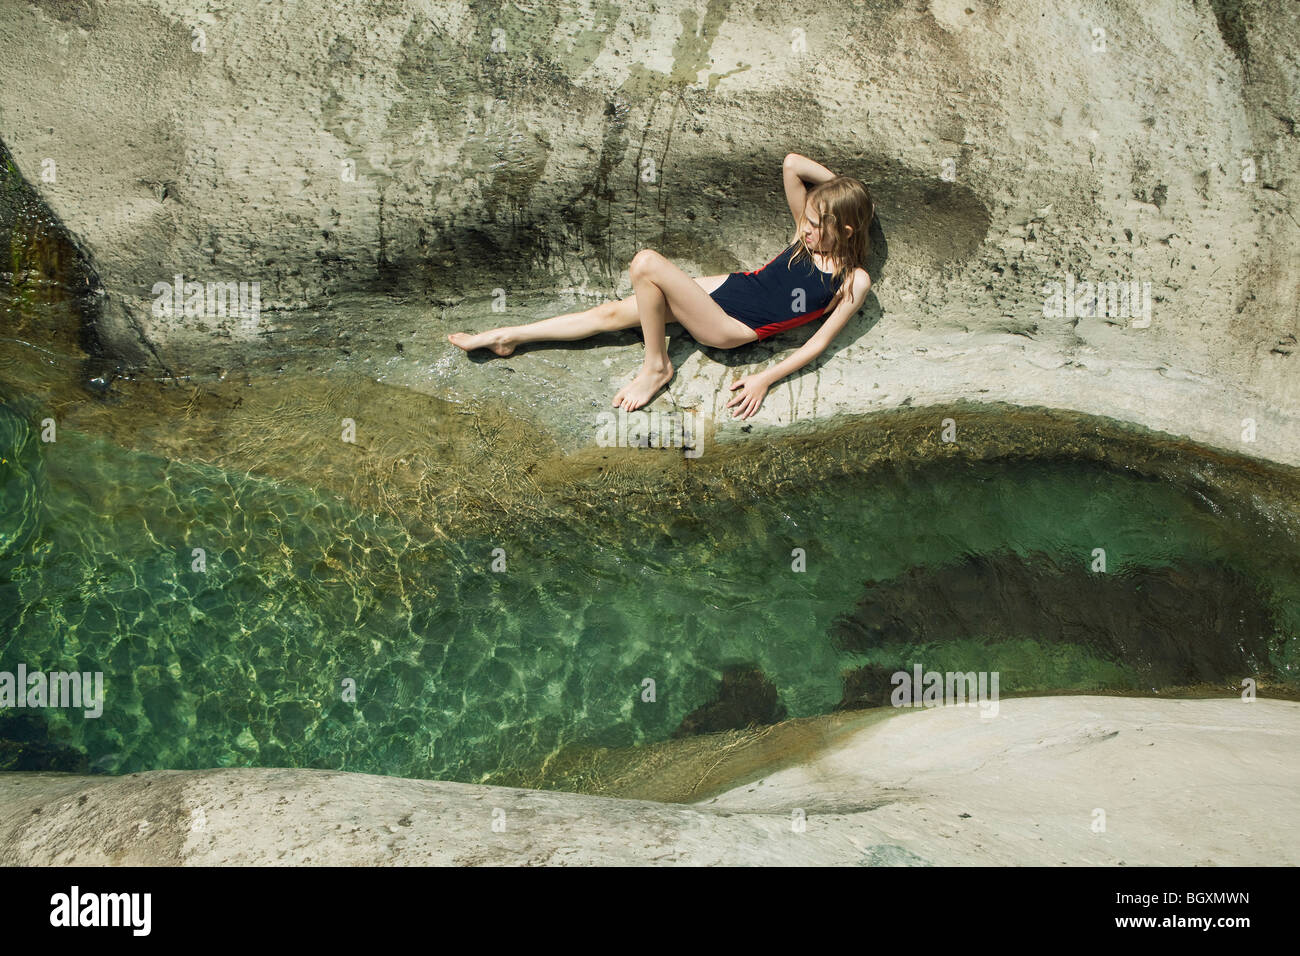 Girl lying on rock next to stream - Stock Image